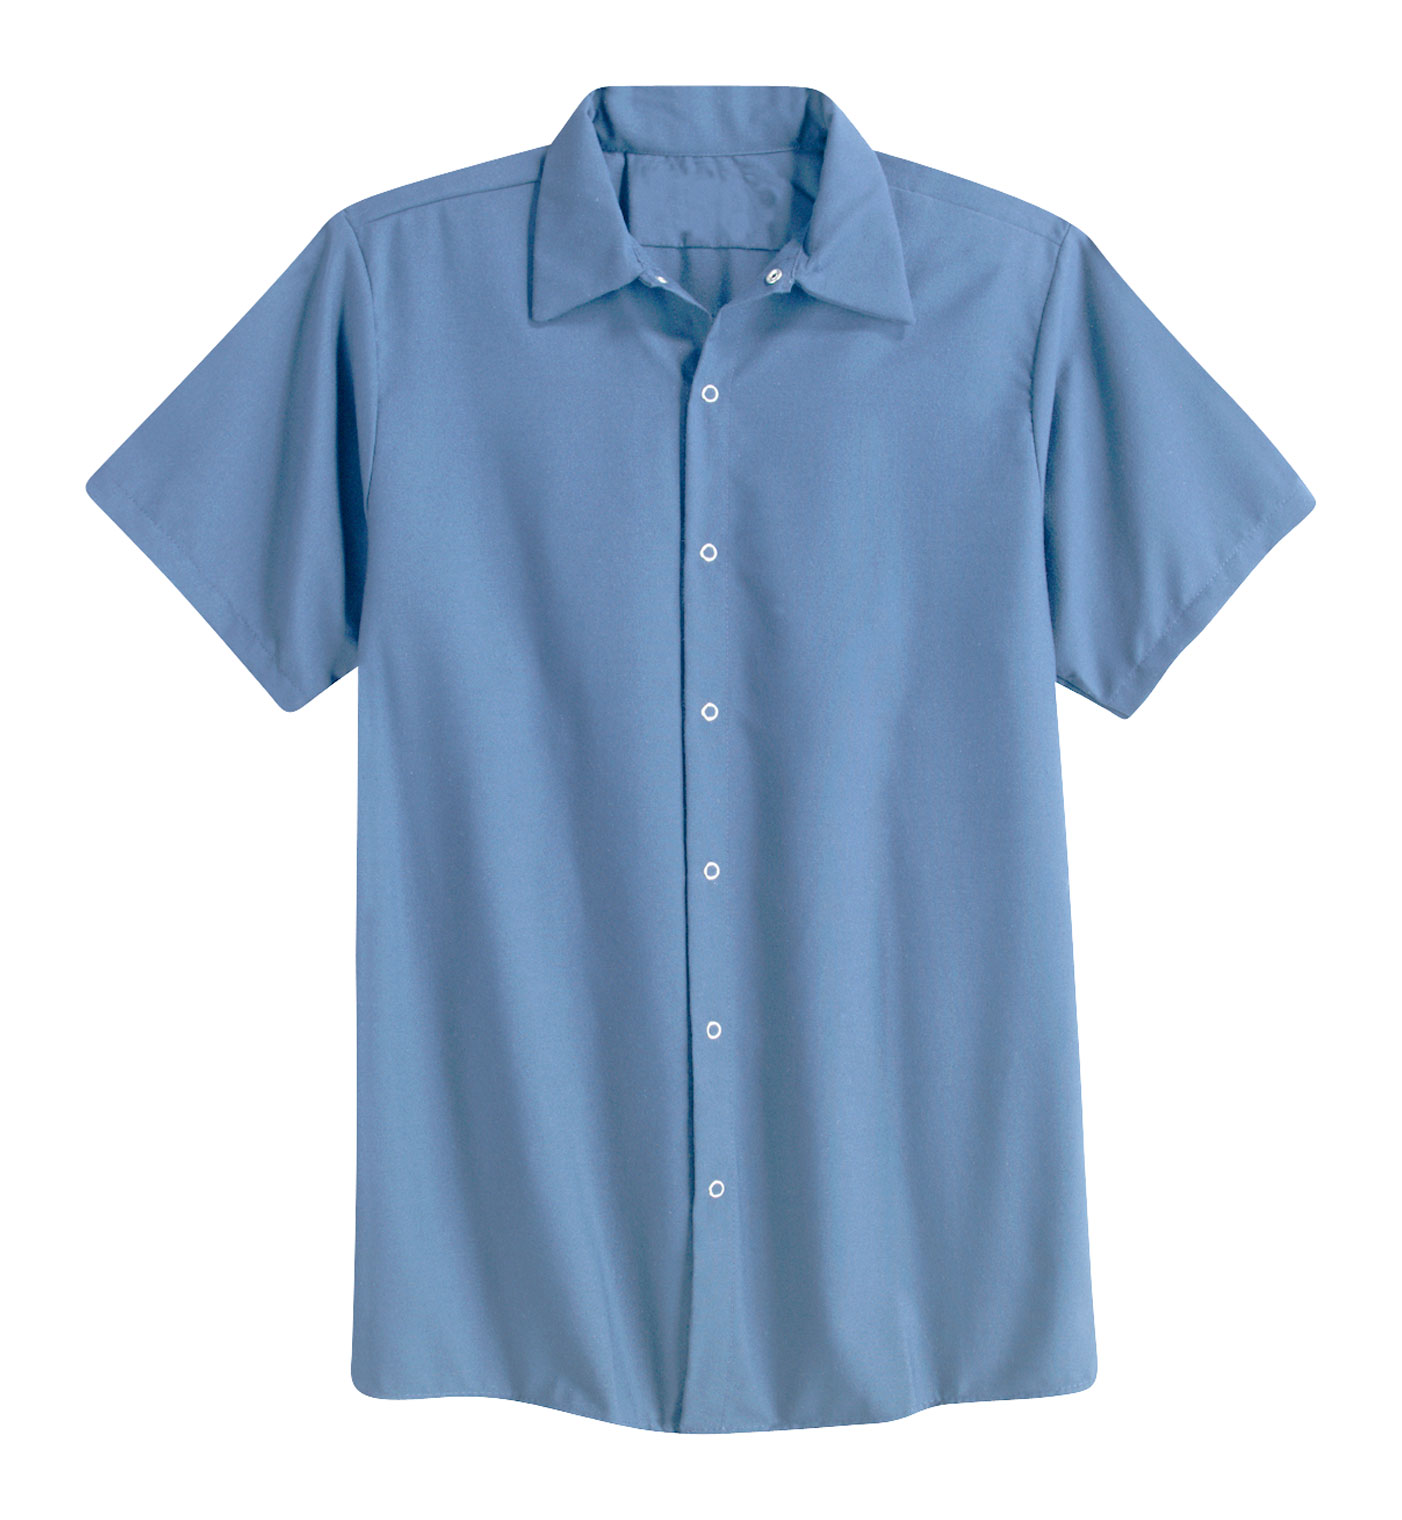 86ee826194bc2 Aramark Mens Pocketless Snap-Front Shirt